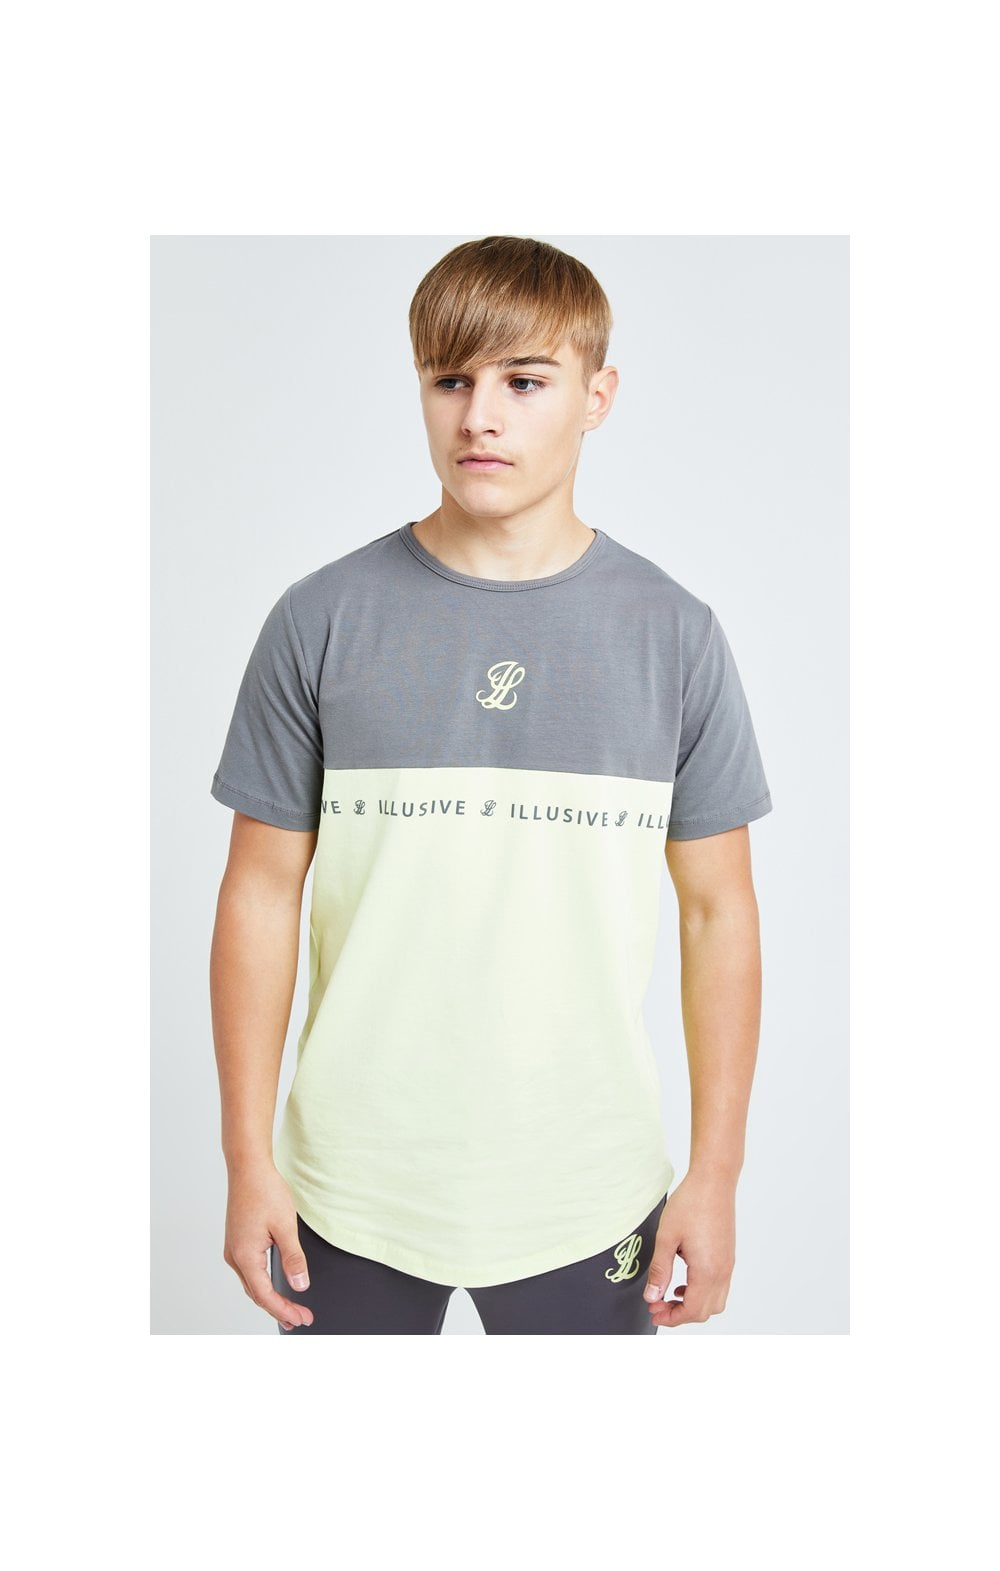 Illusive London Blaze Cut & Sew Tee - Dark Grey & Lime